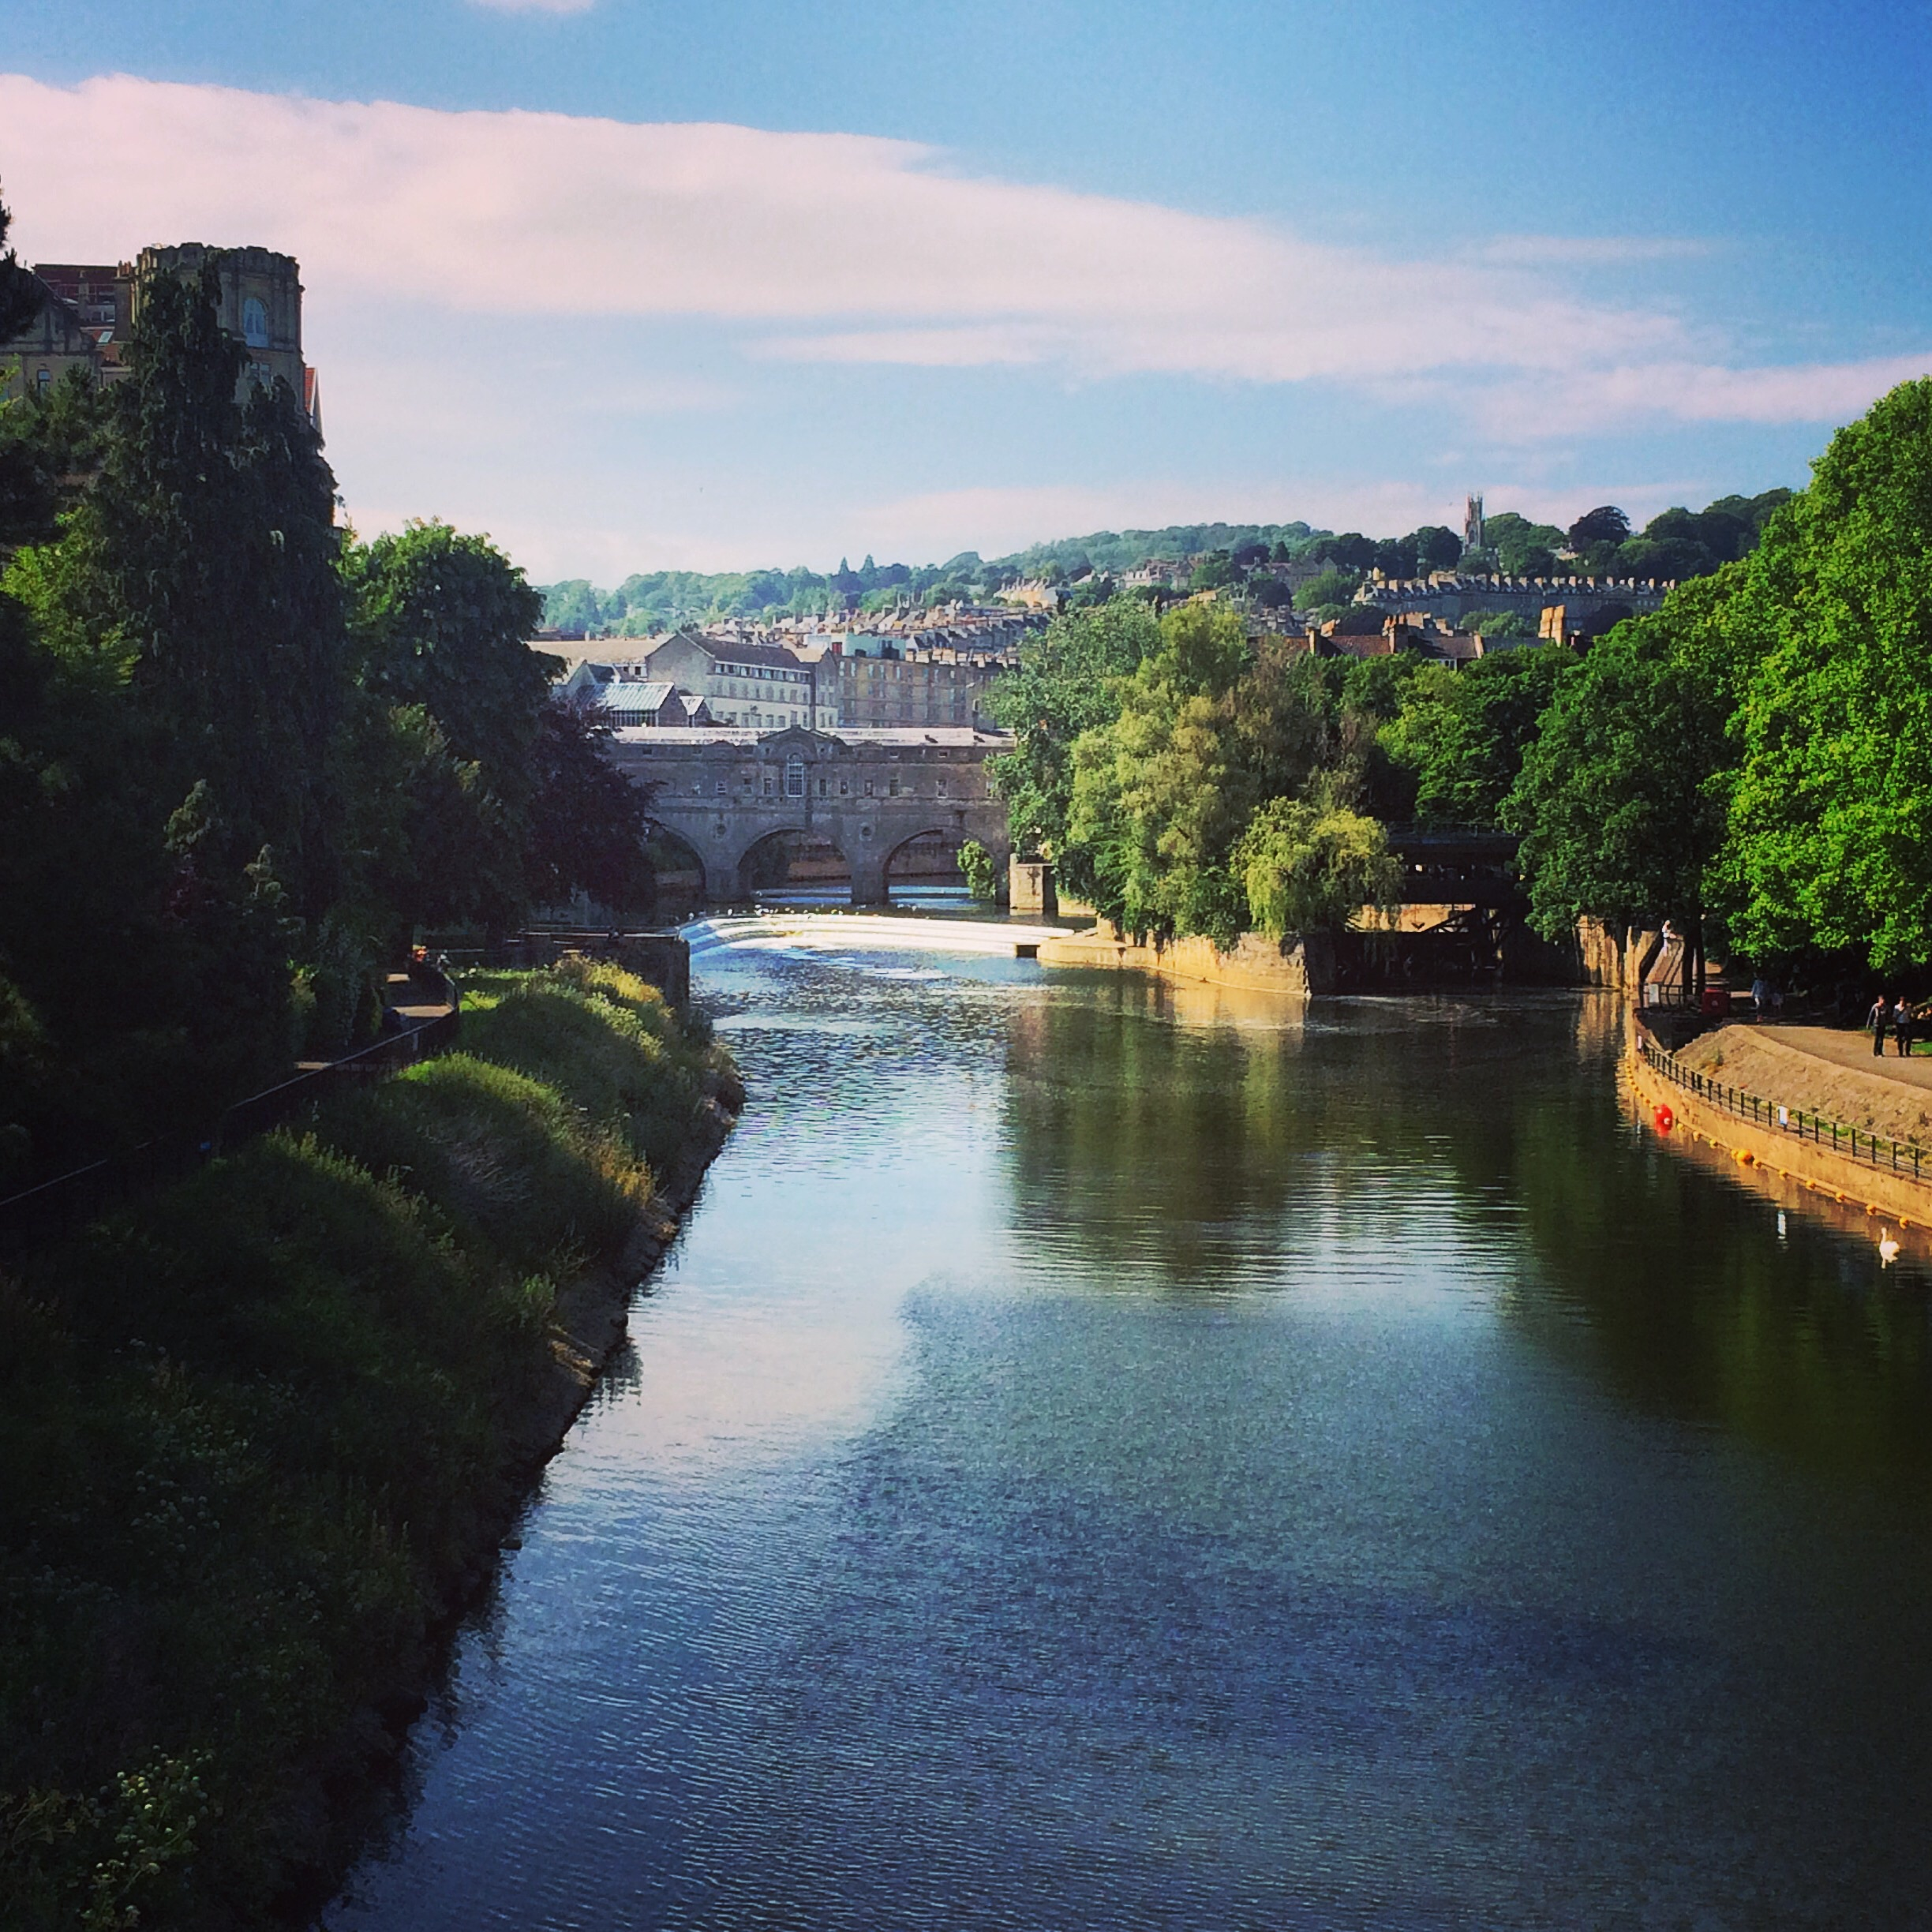 The view from Pulteney Bridge, Bath